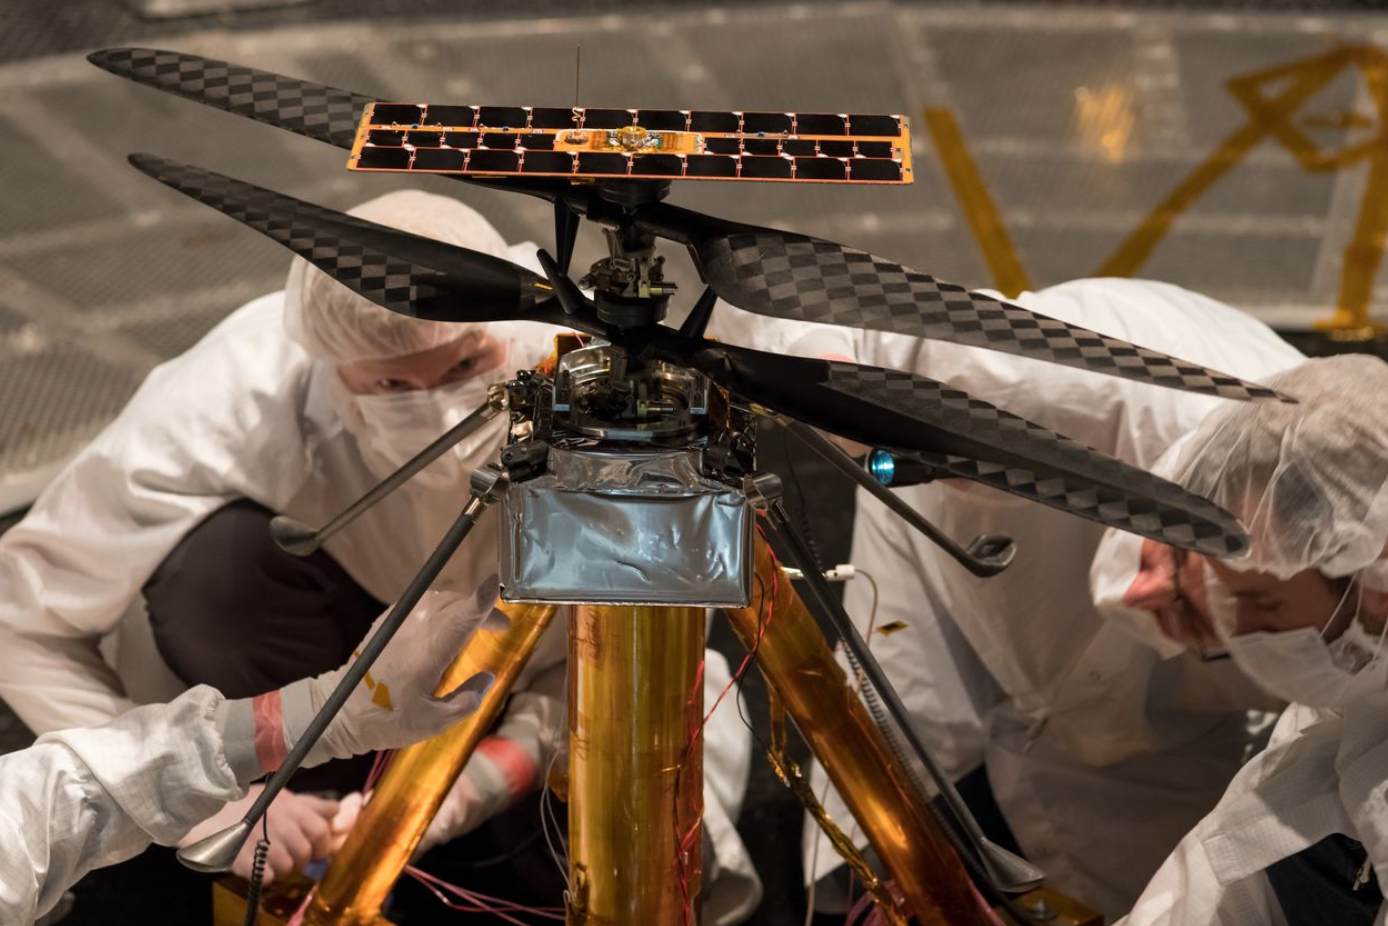 NASA's Ingenuity Mars Helicopter Gets Set For Historic First Flight On Another World